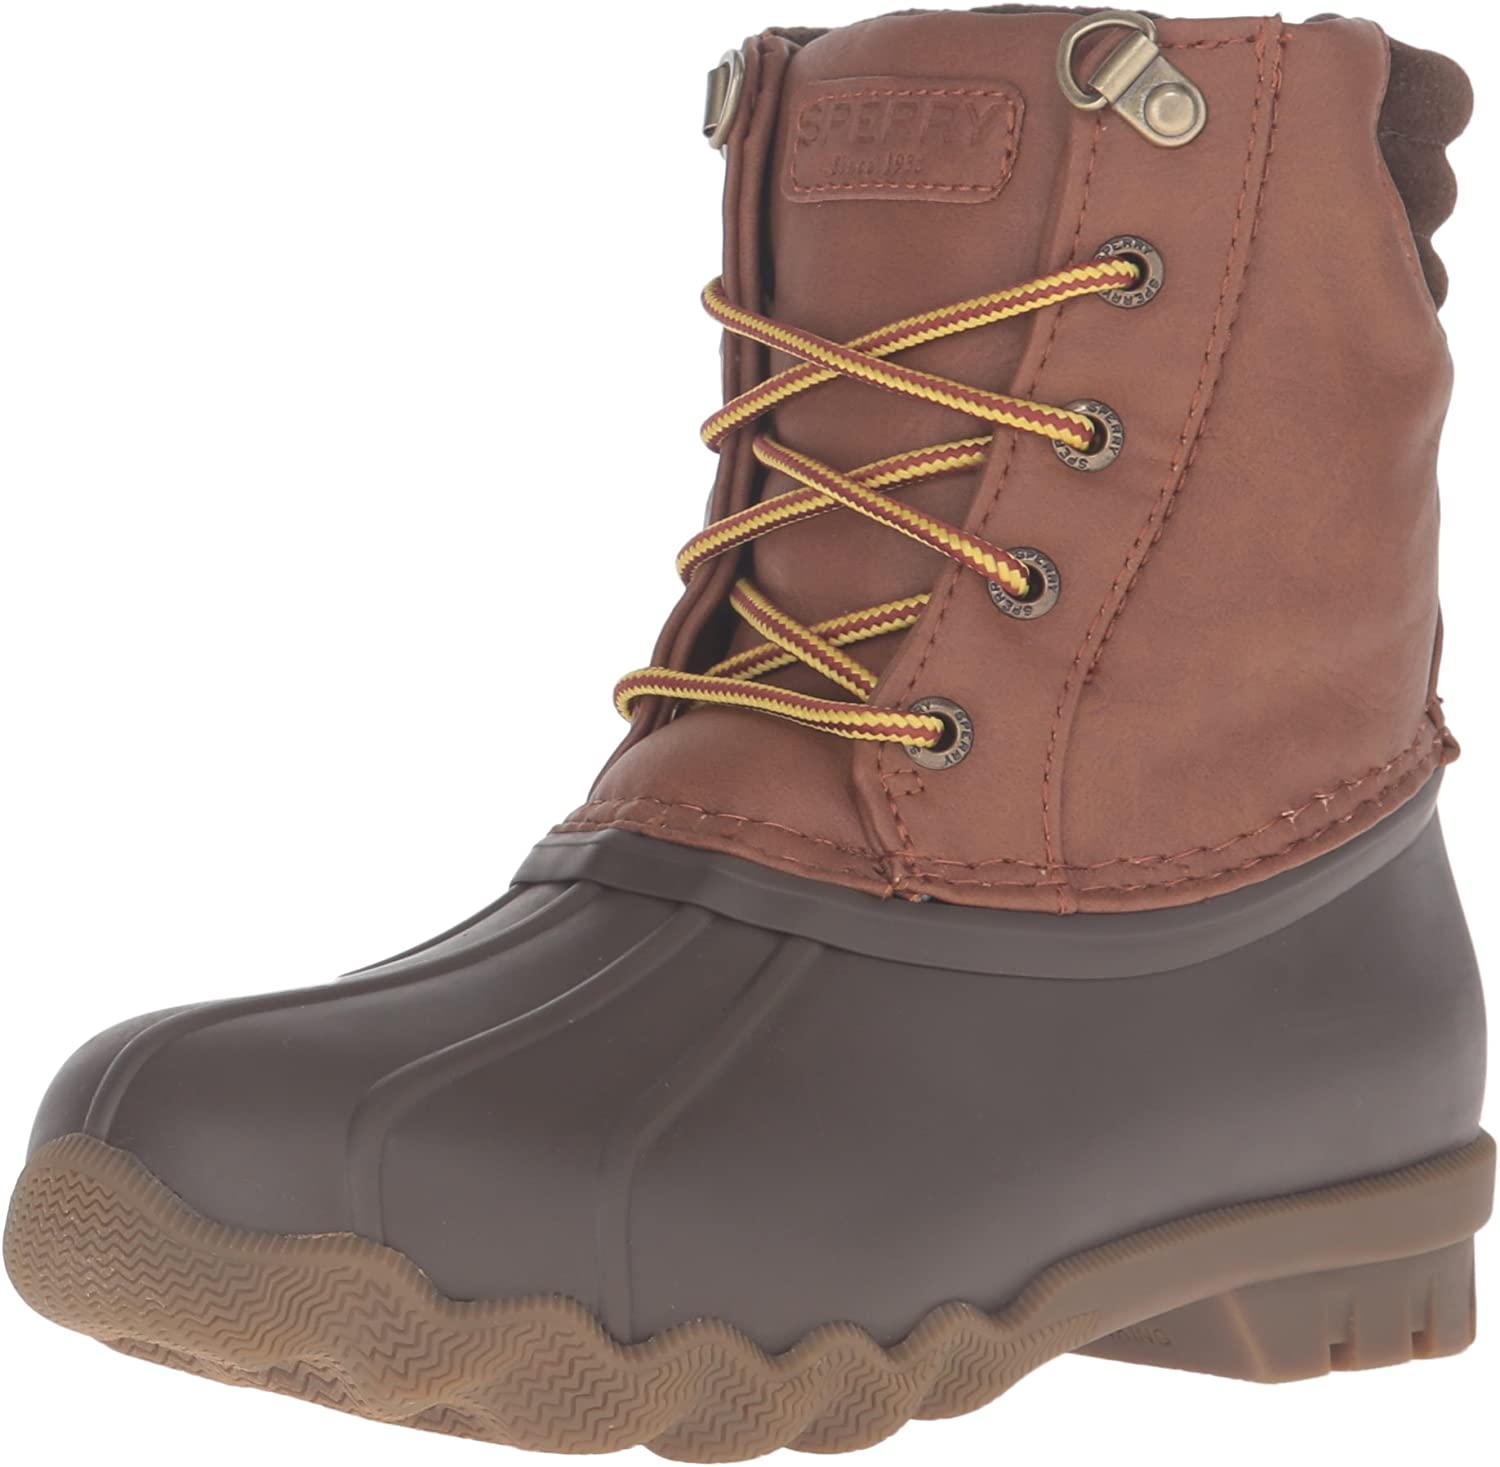 Boys Walking Boots Sperry Top-Sider